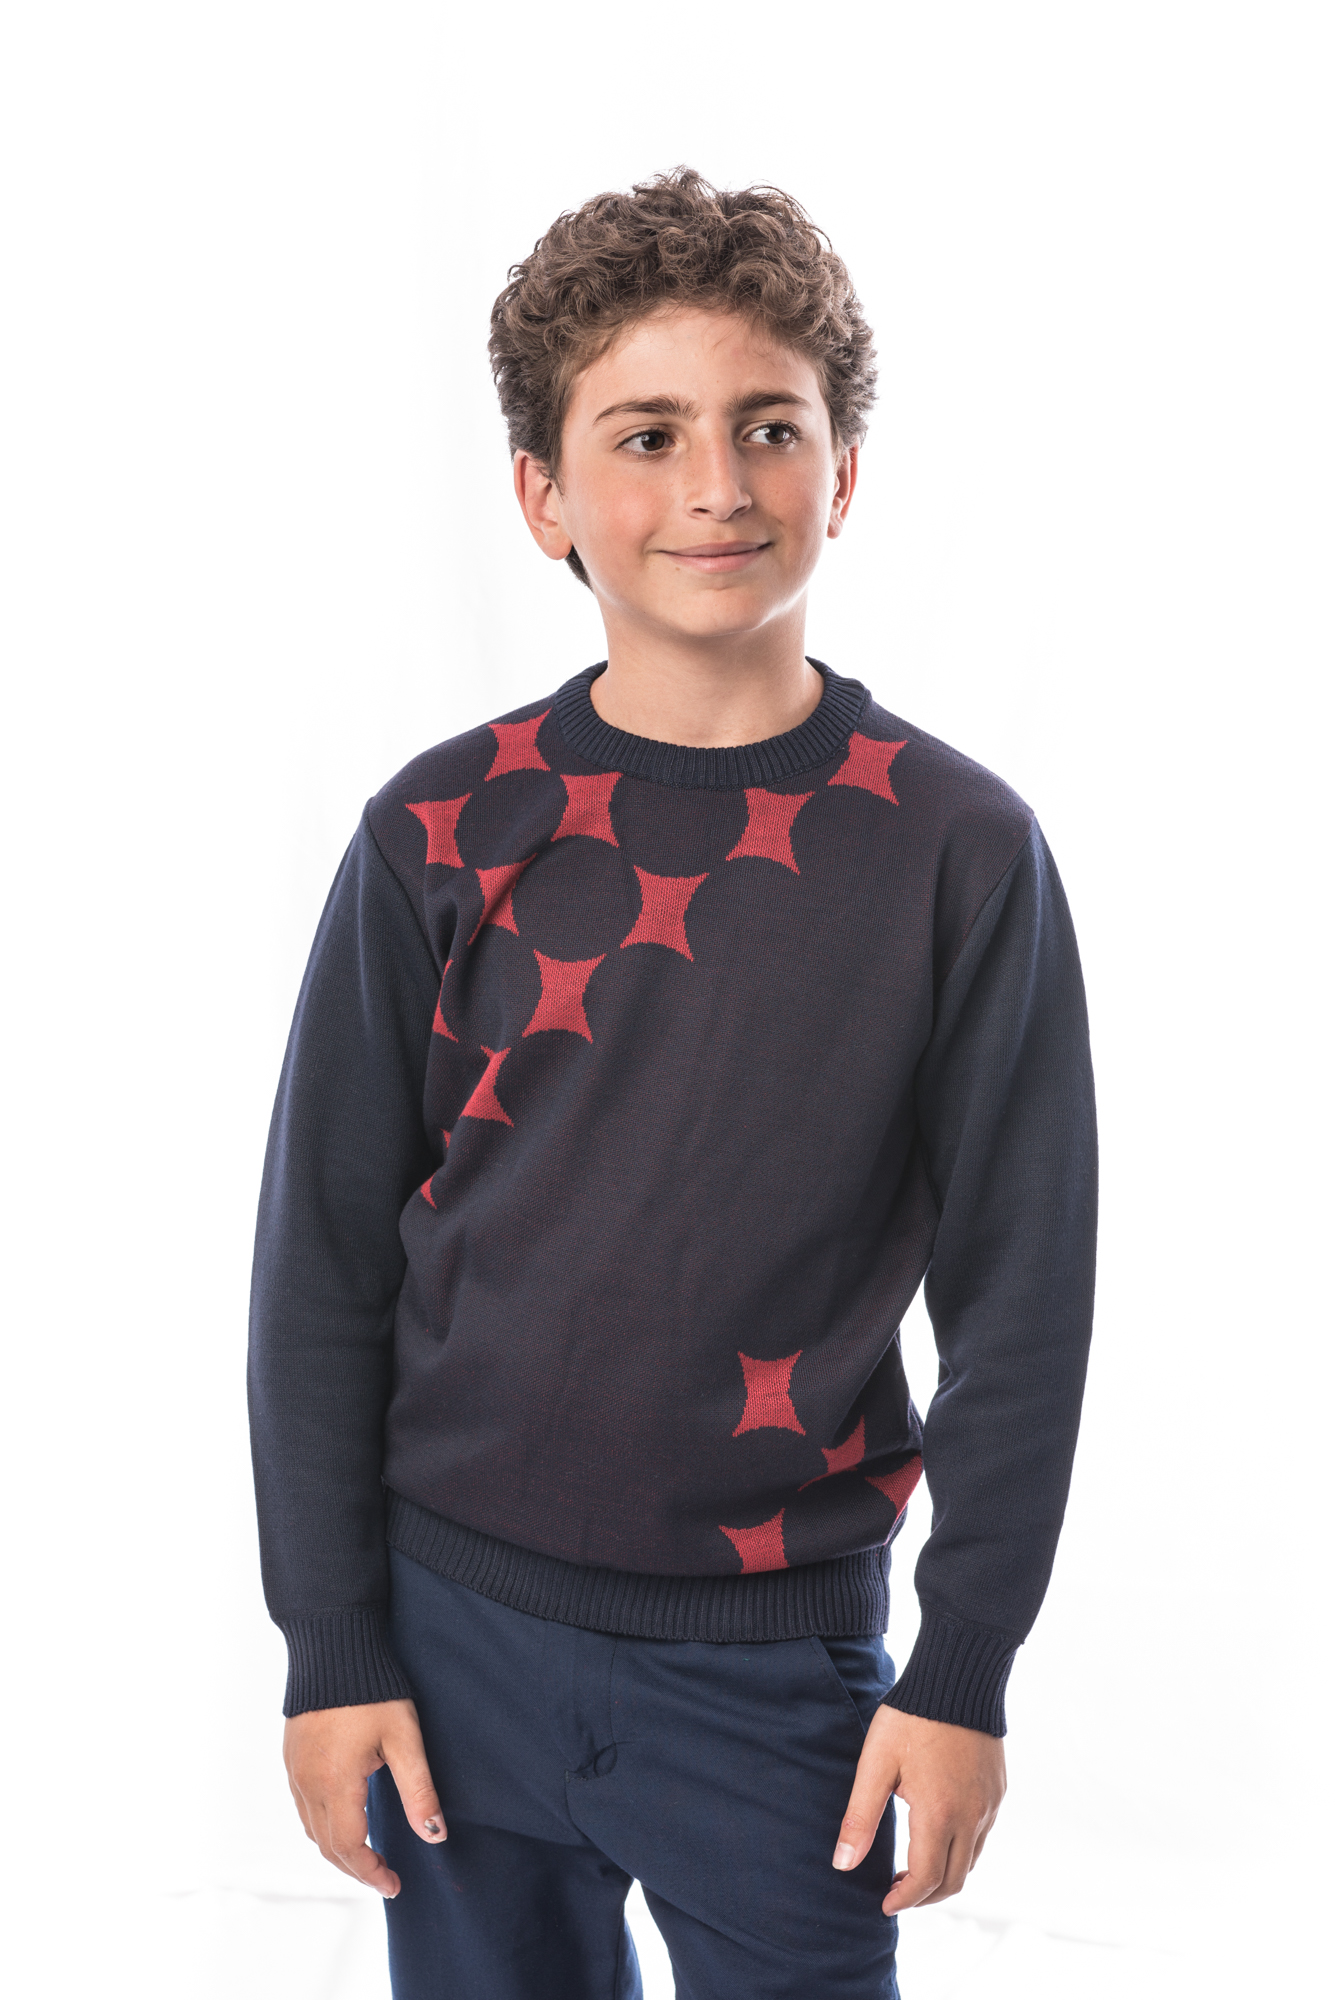 Diamond Design Boys Sweater EBST1614B